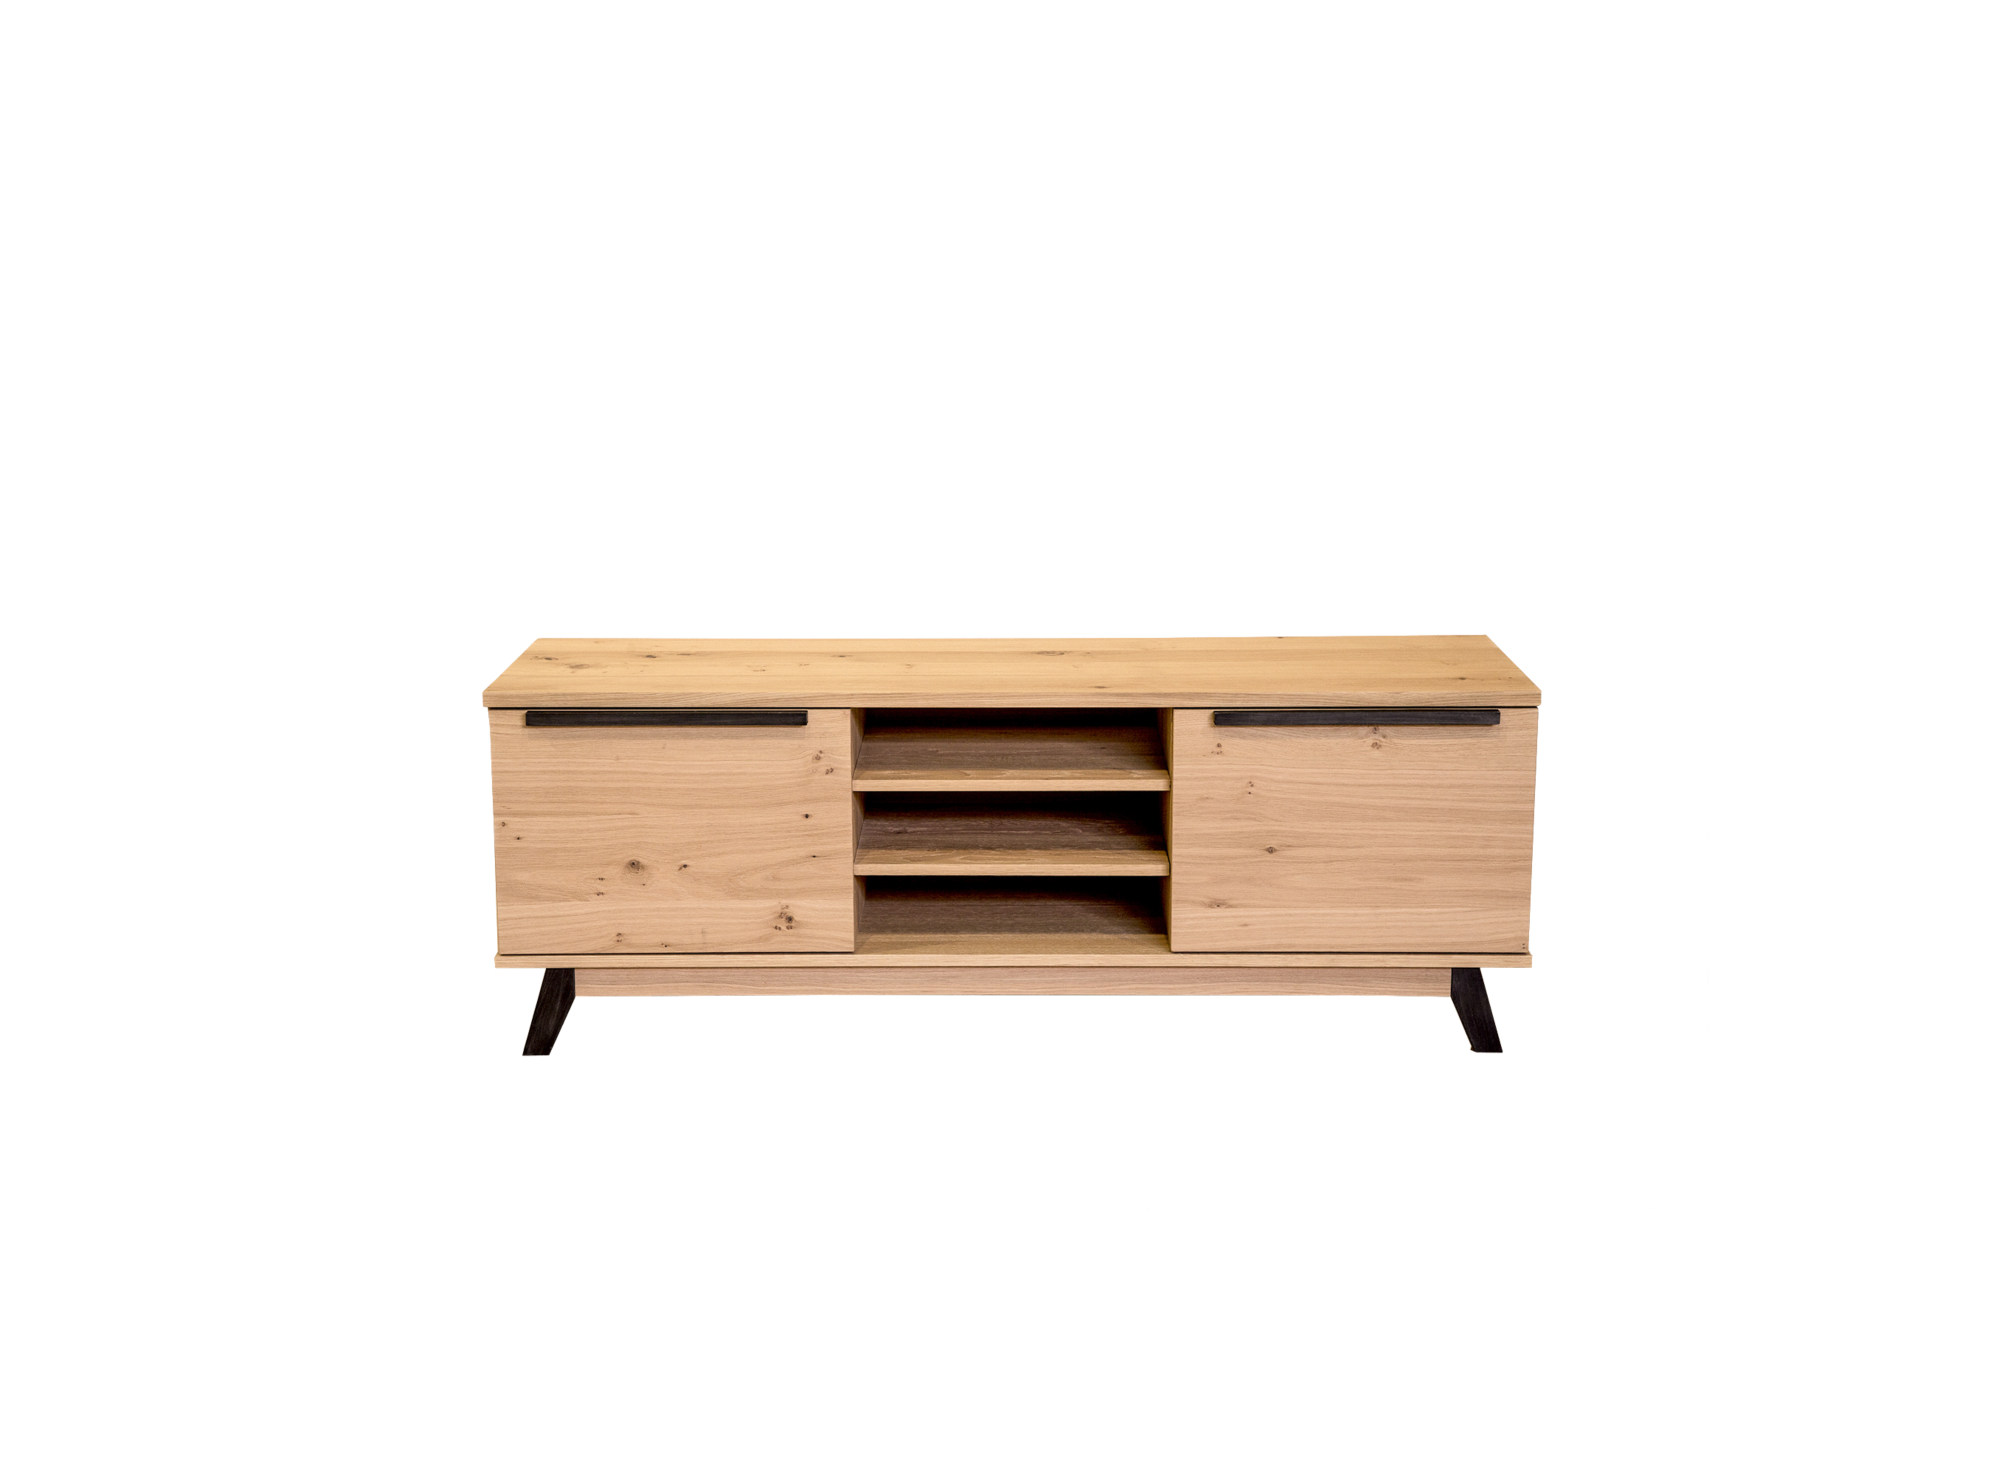 luxus meuble tv table basse assorti id es de conception de table basse. Black Bedroom Furniture Sets. Home Design Ideas